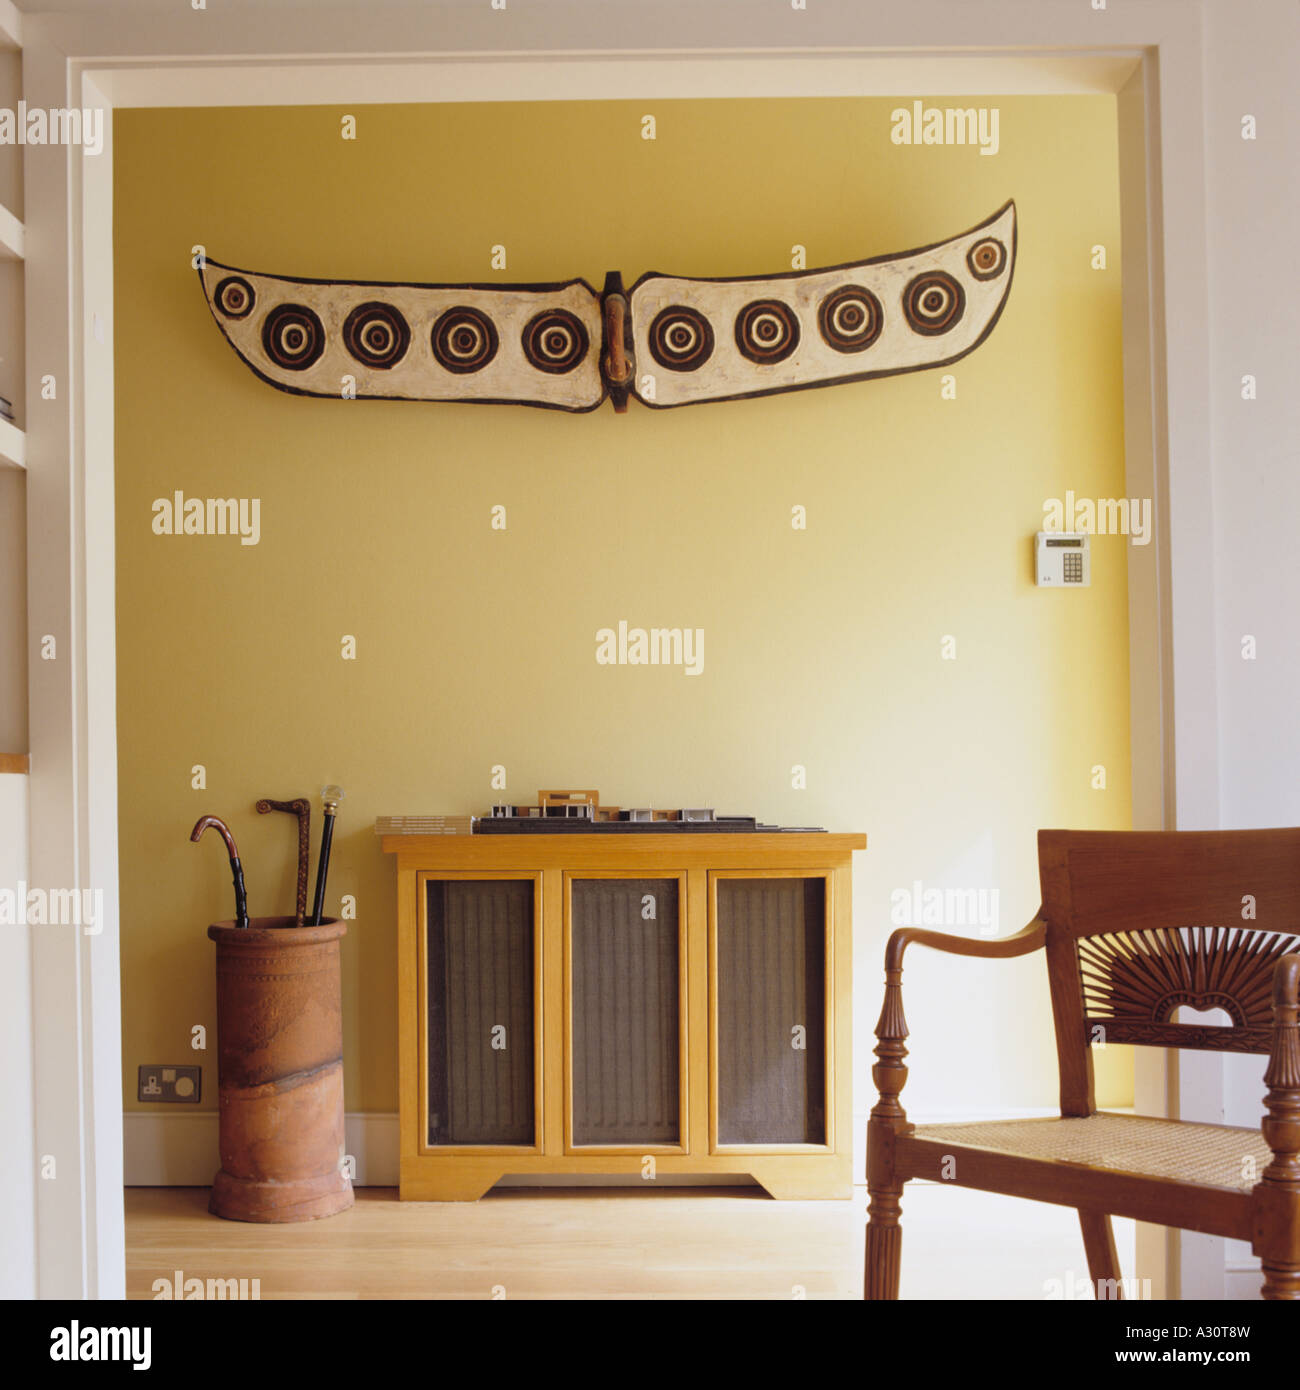 Yellow entrance hall with ethnic wall-piece and umbrella stand - Stock Image